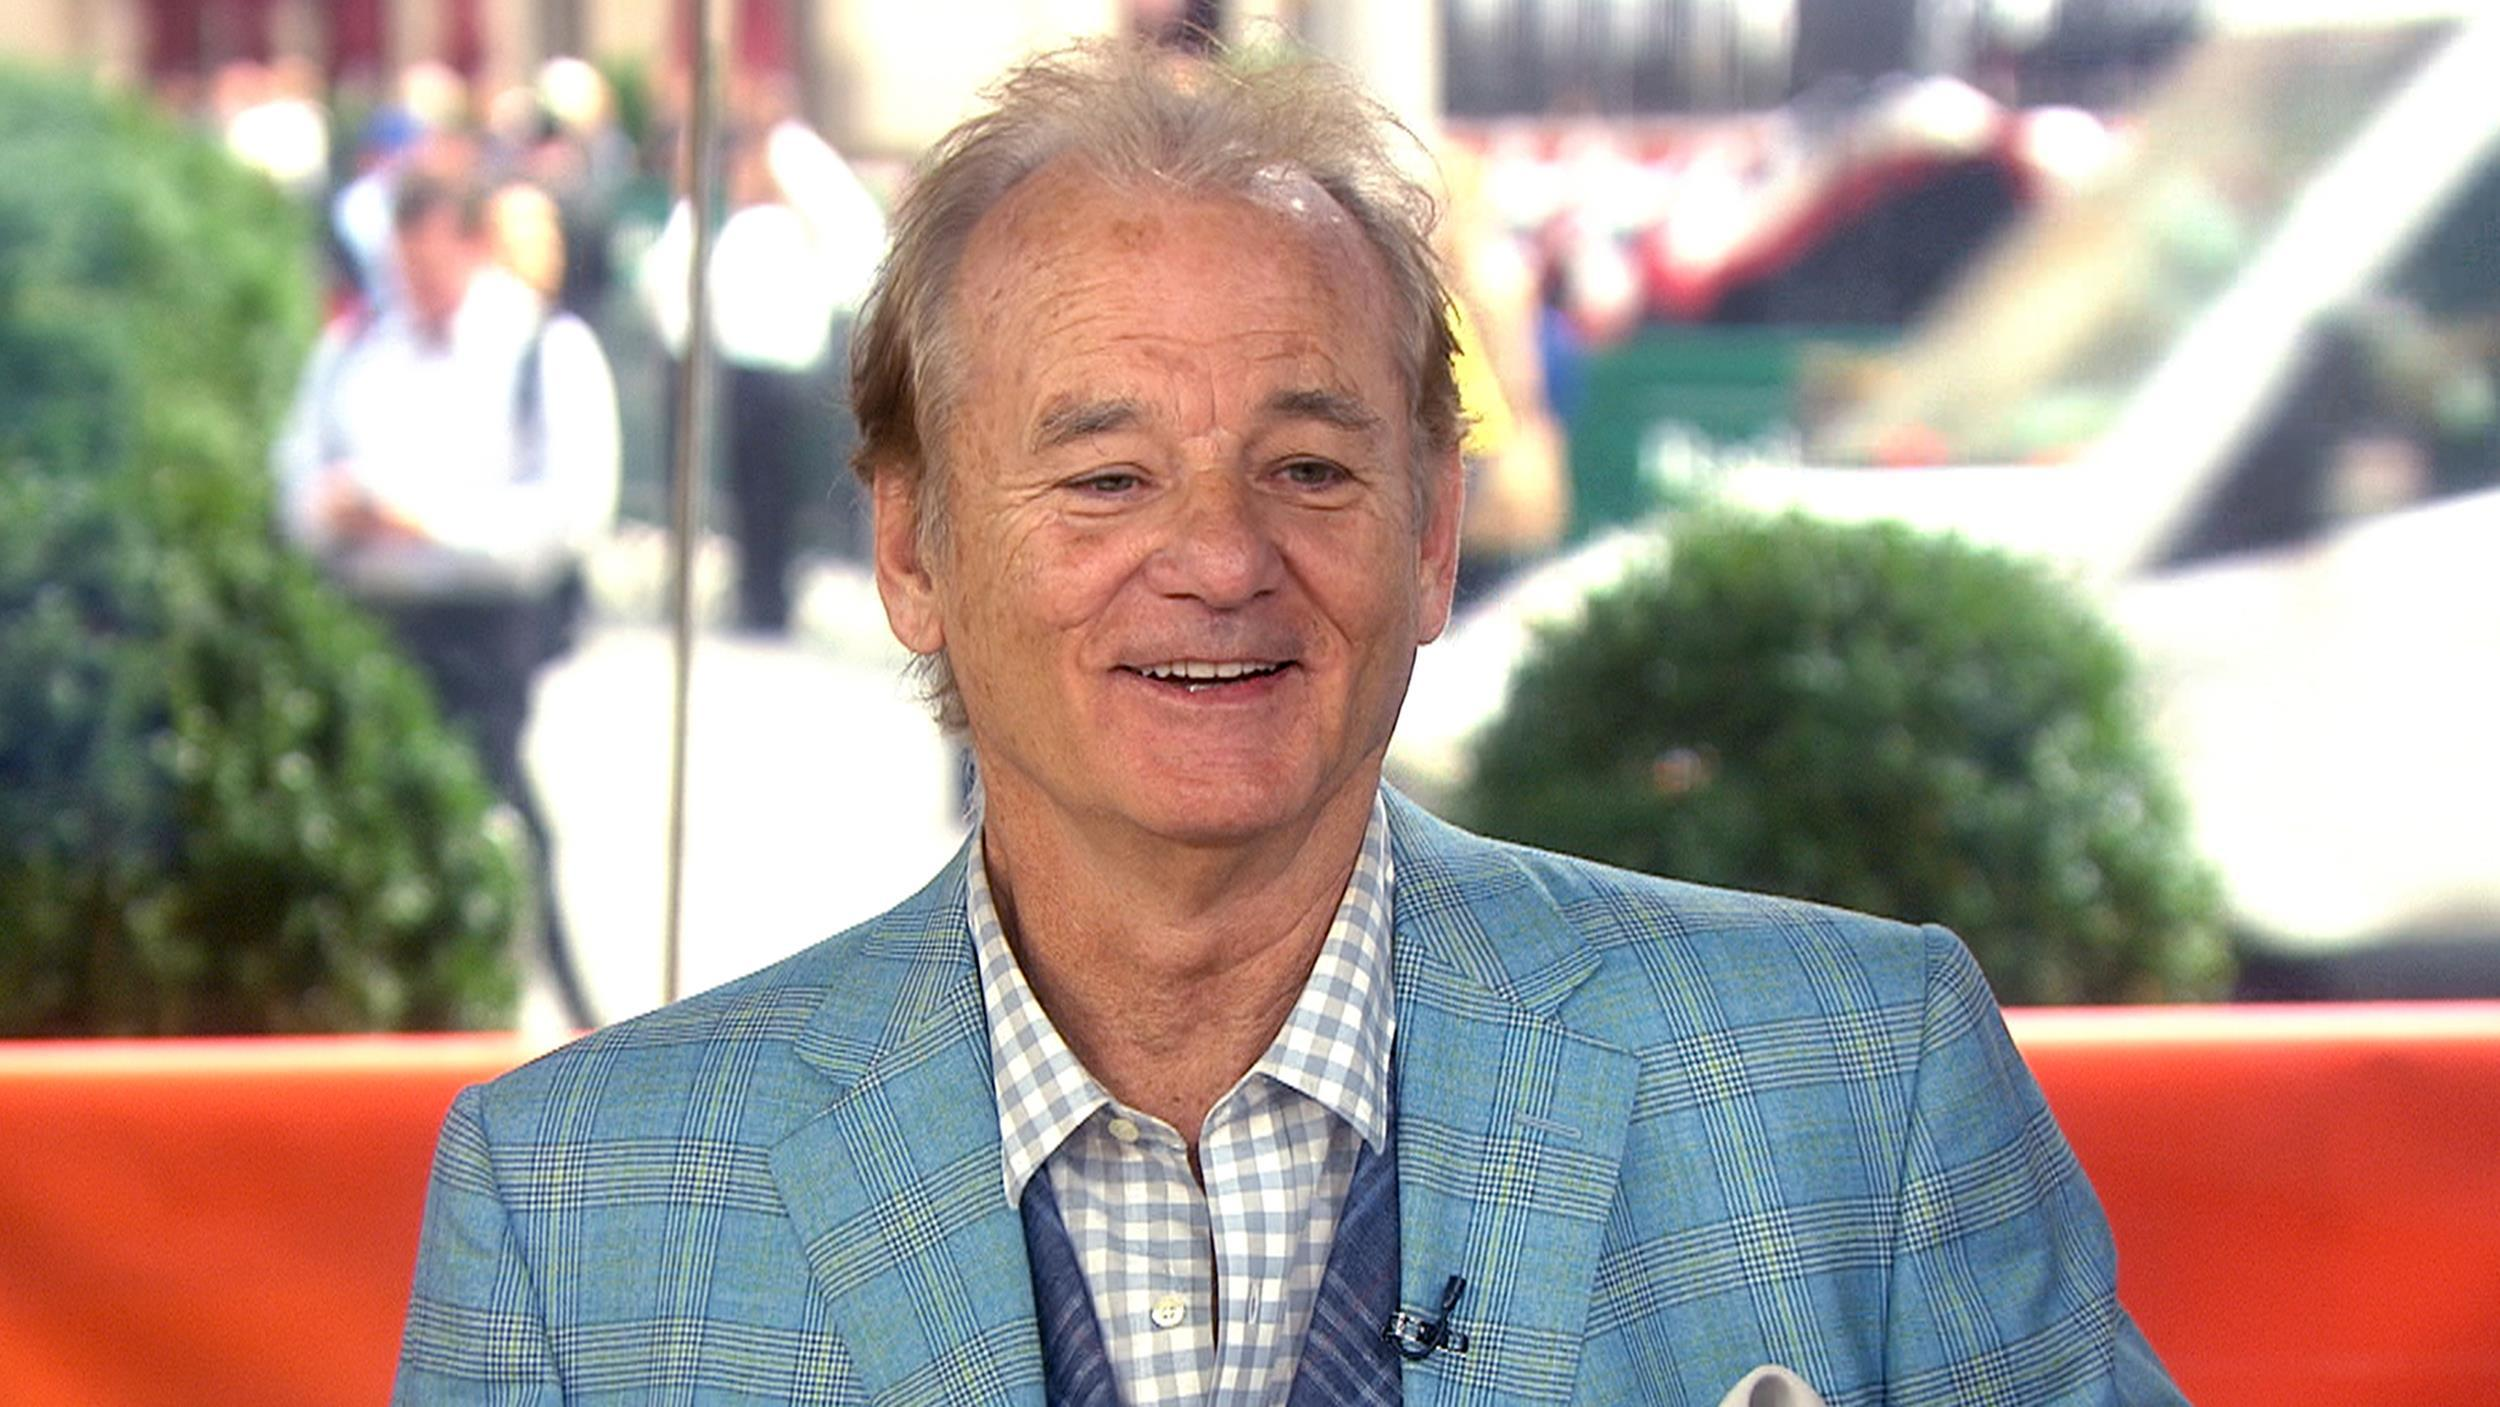 bill murray hd wallpaper - photo #23